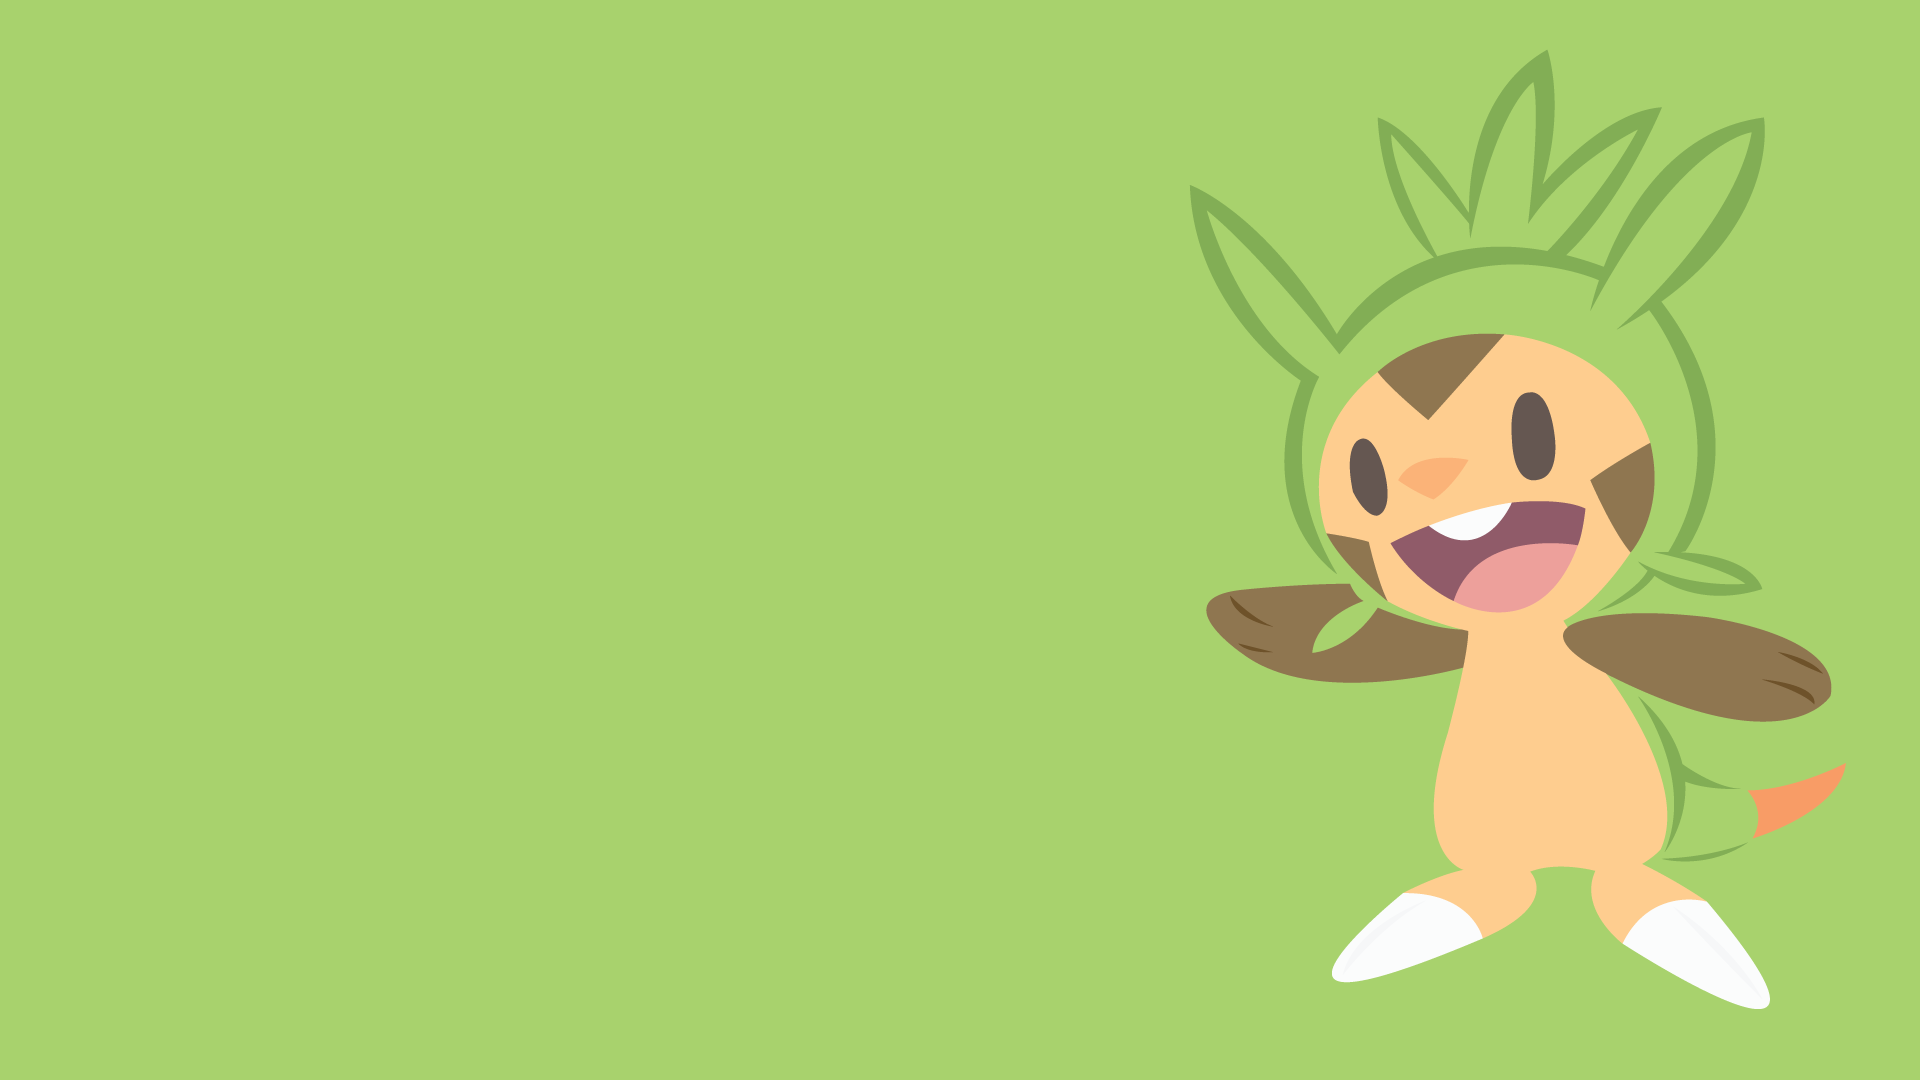 Pokemon on Pokeminimal - DeviantArt